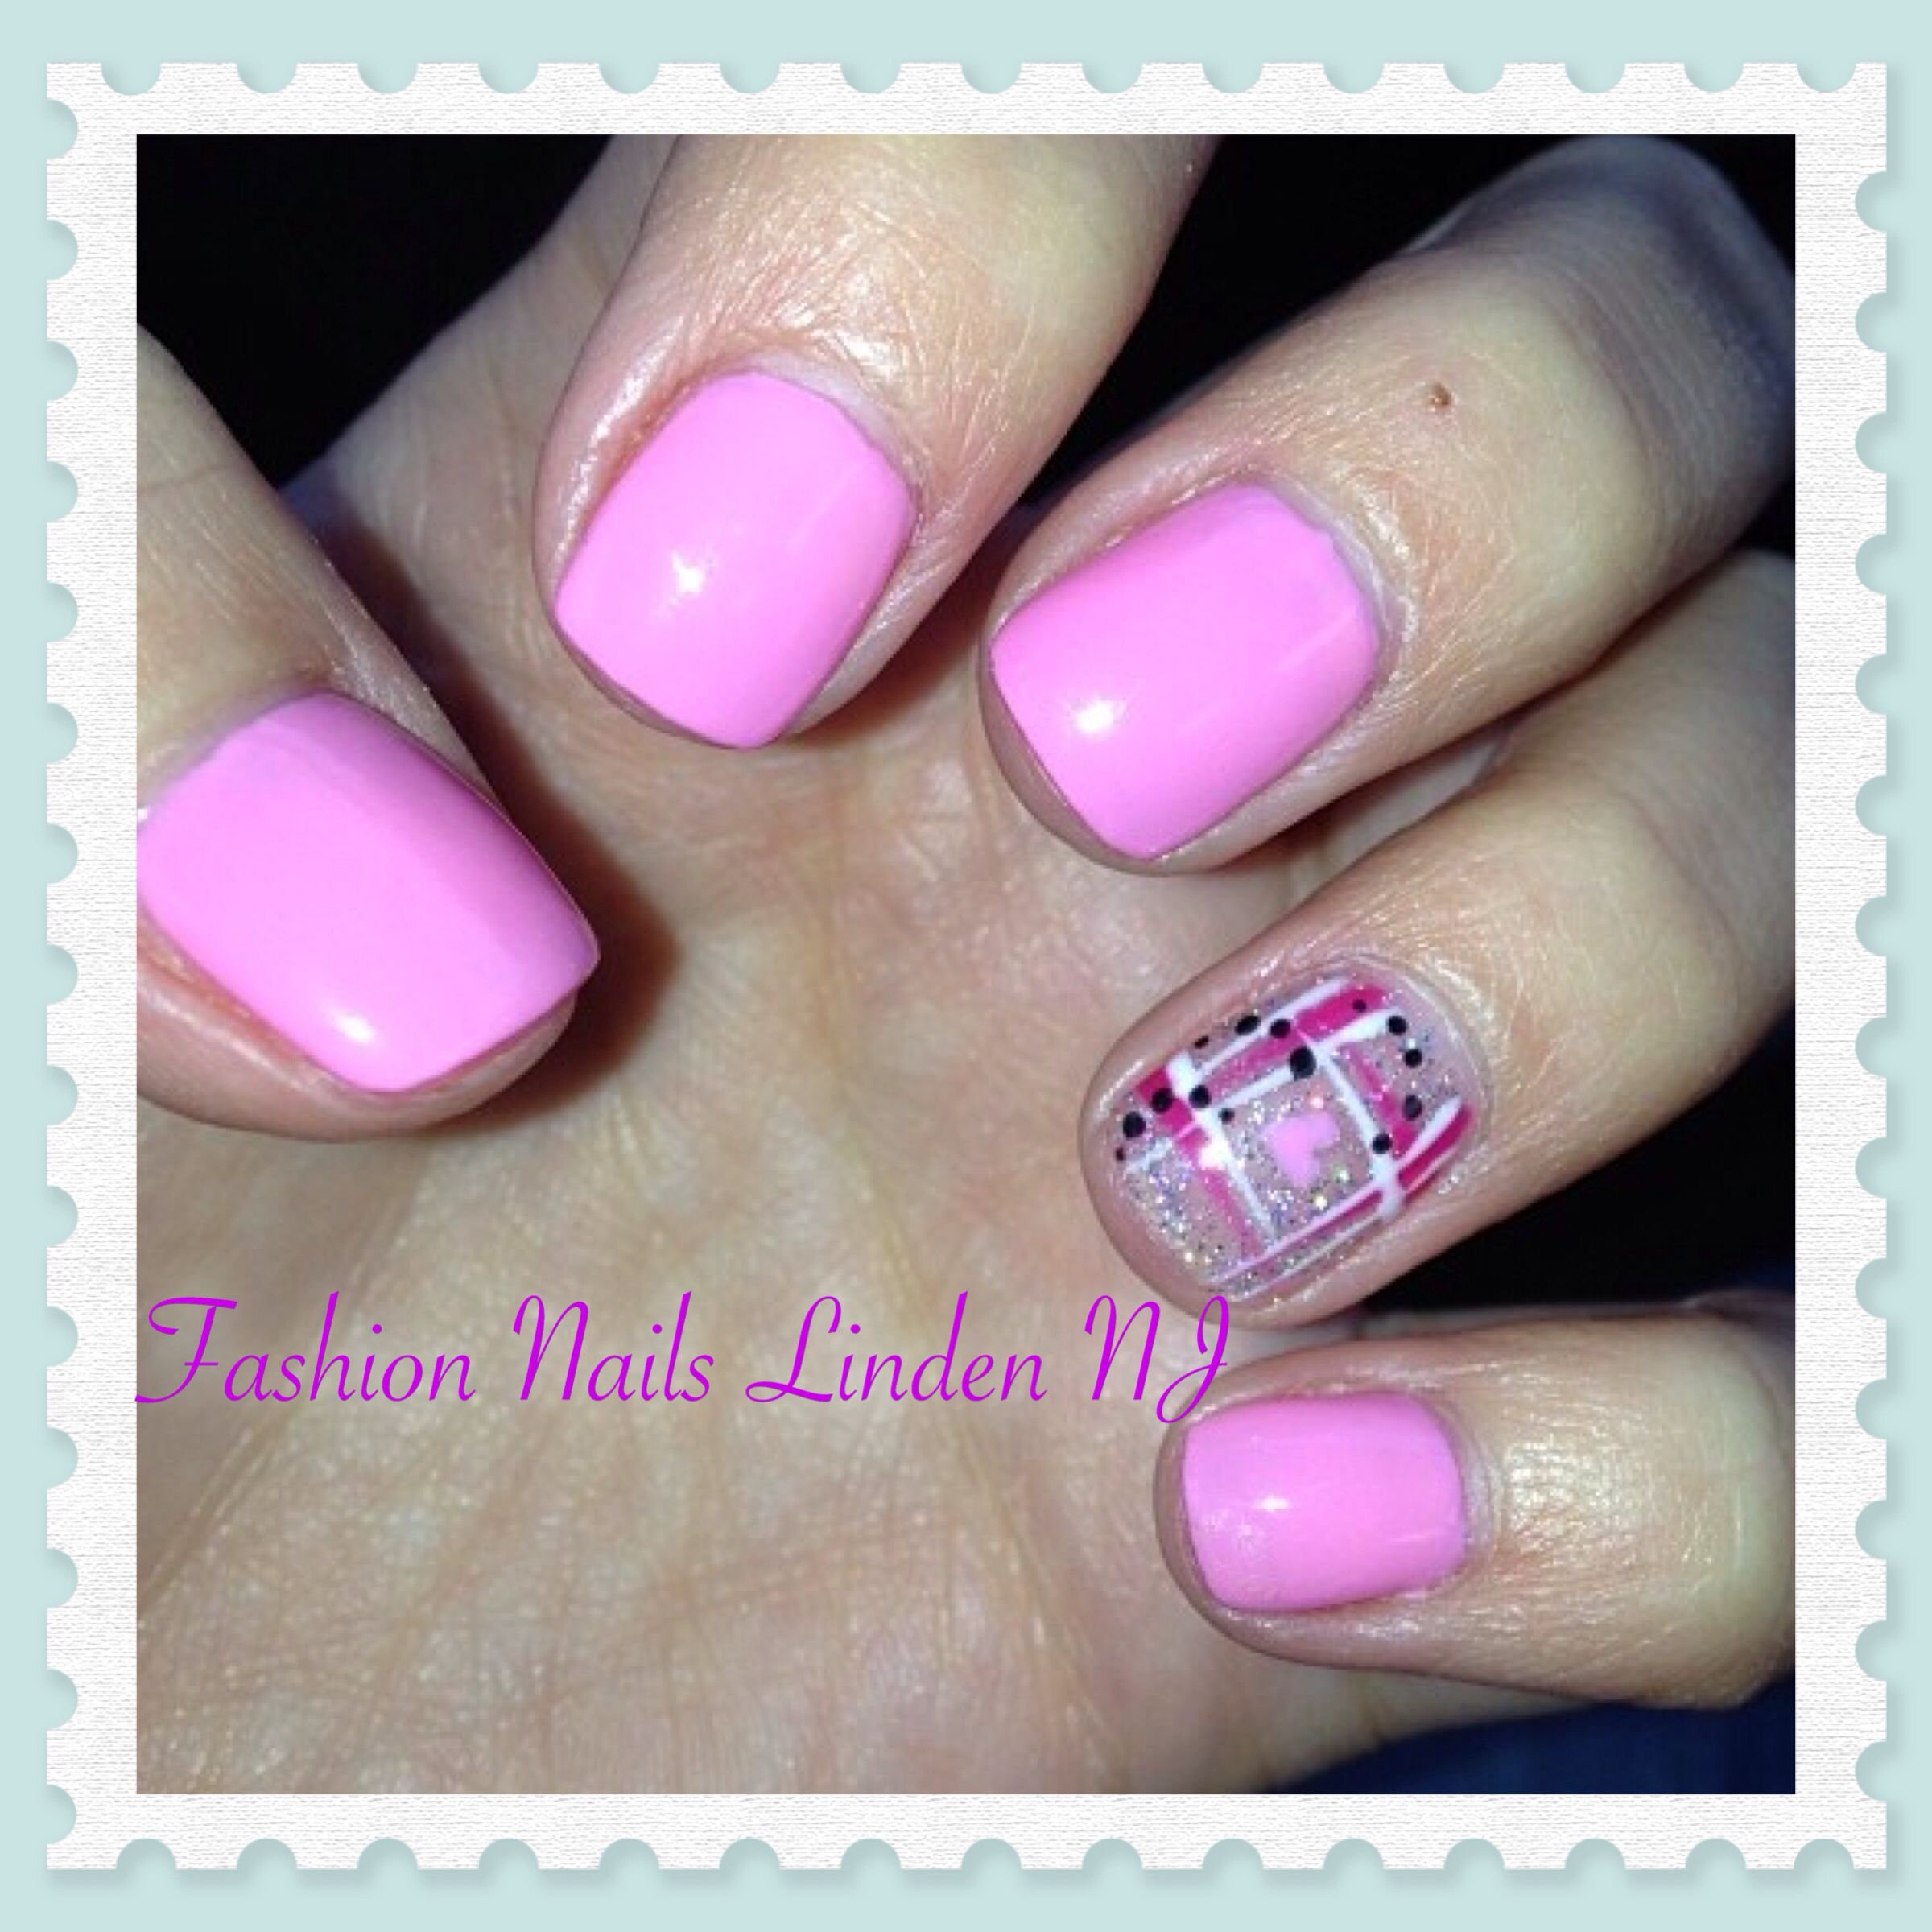 Nail arts #nj #new #nails #nailarts #naildesign #art #design #colors ...